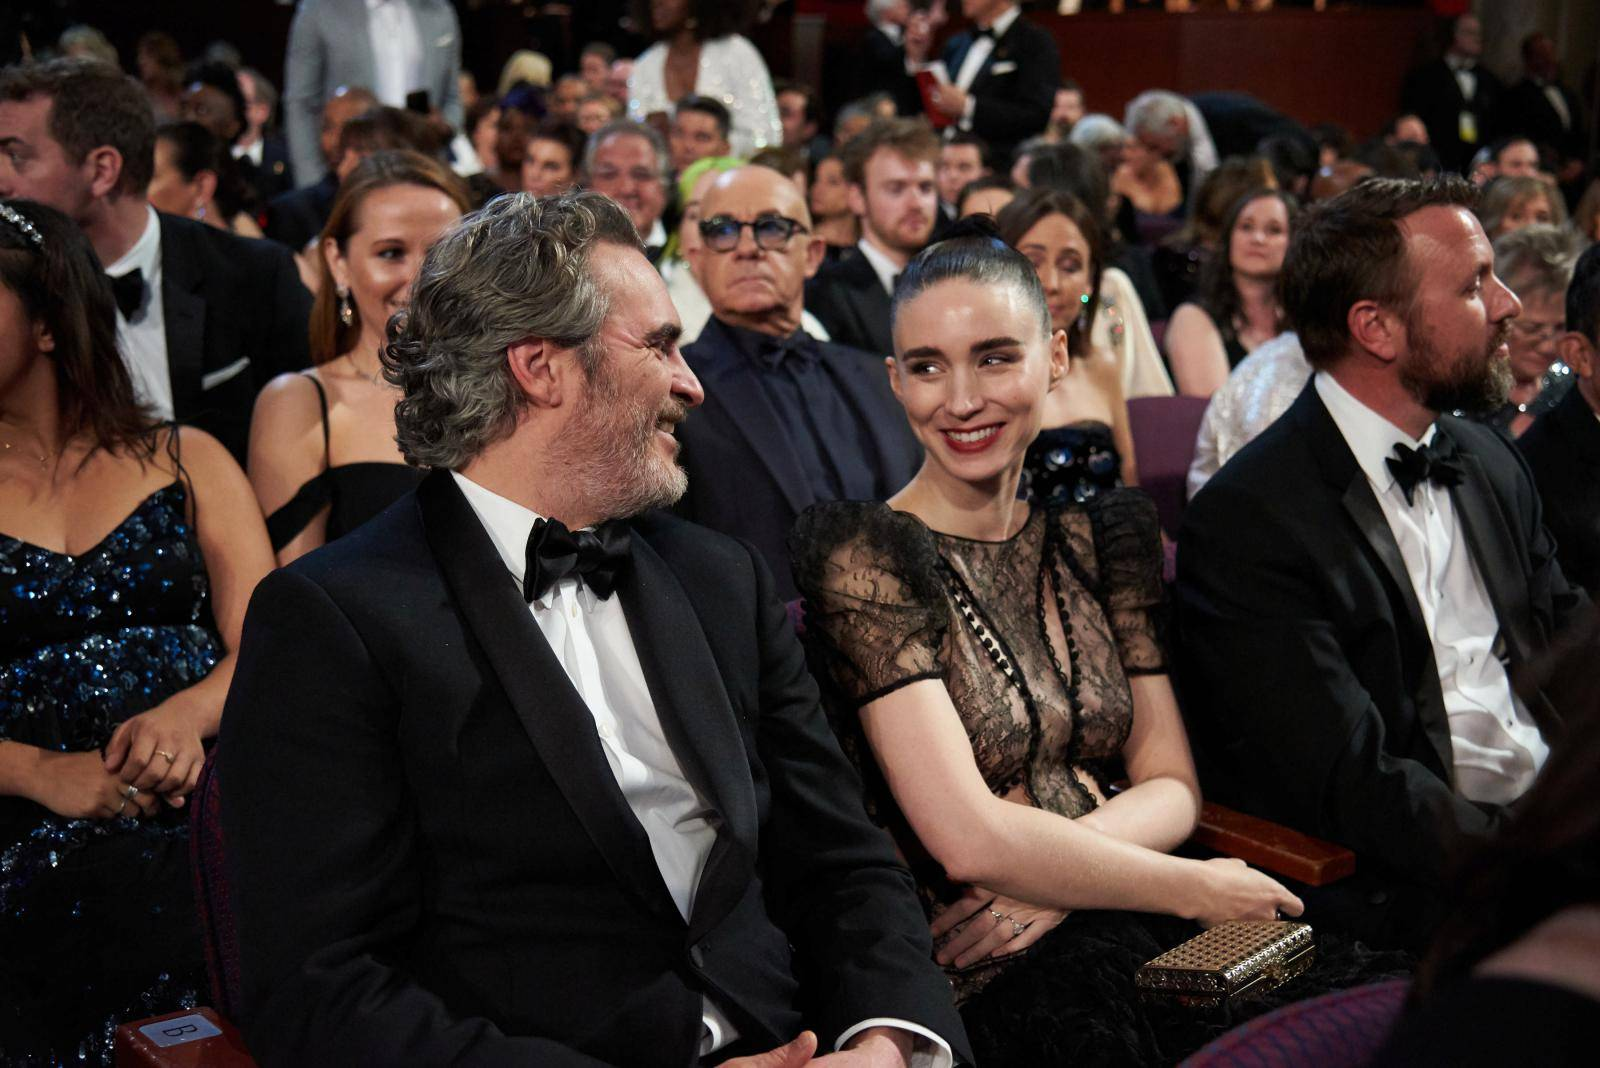 92nd Academy Awards - Audience